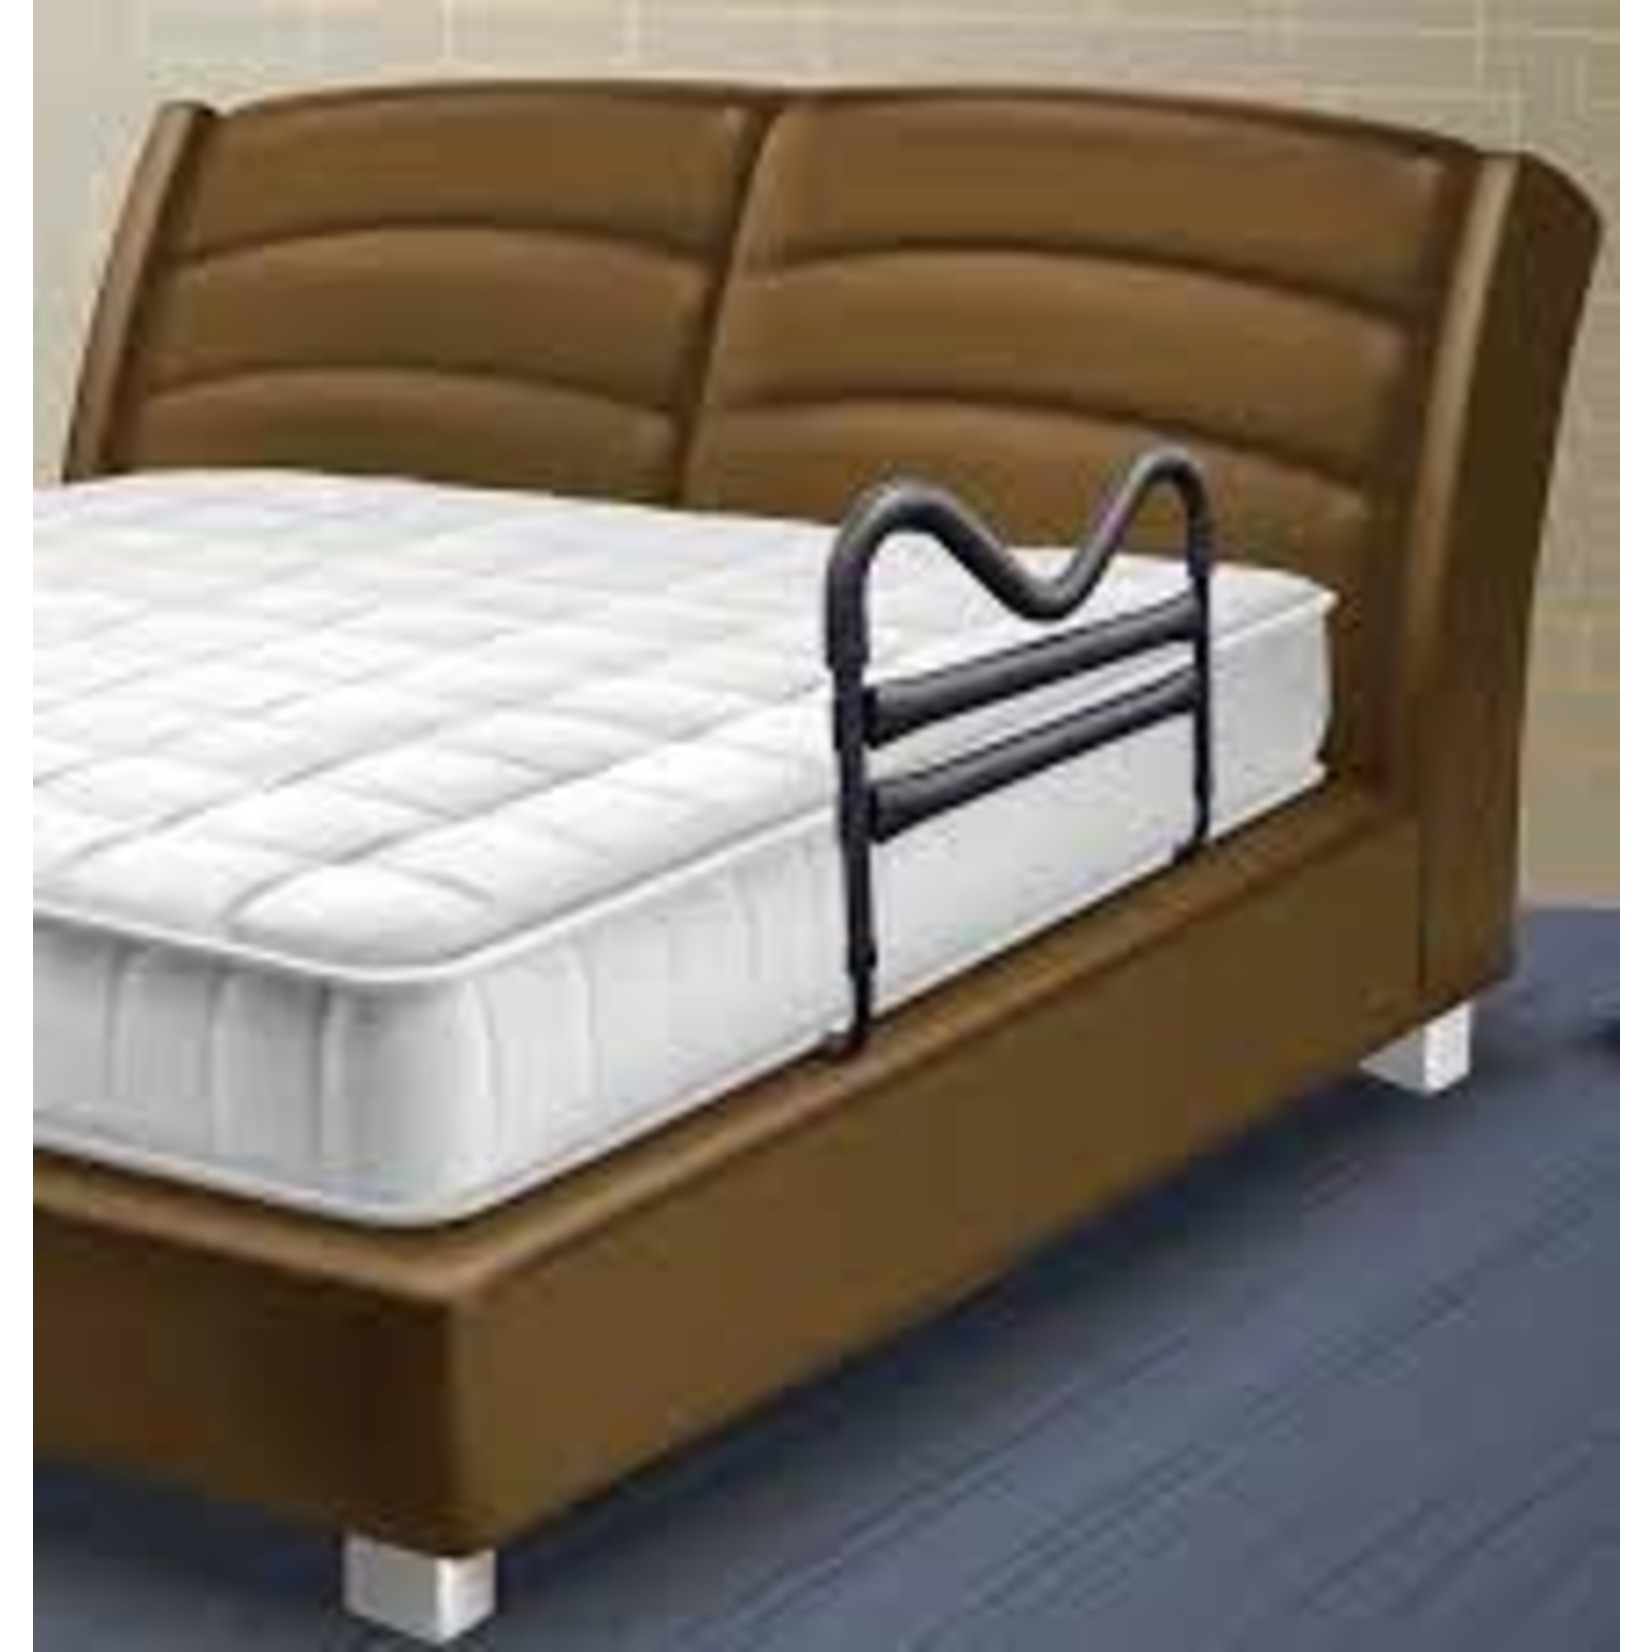 Pro-Aide Bed rail with M Grip